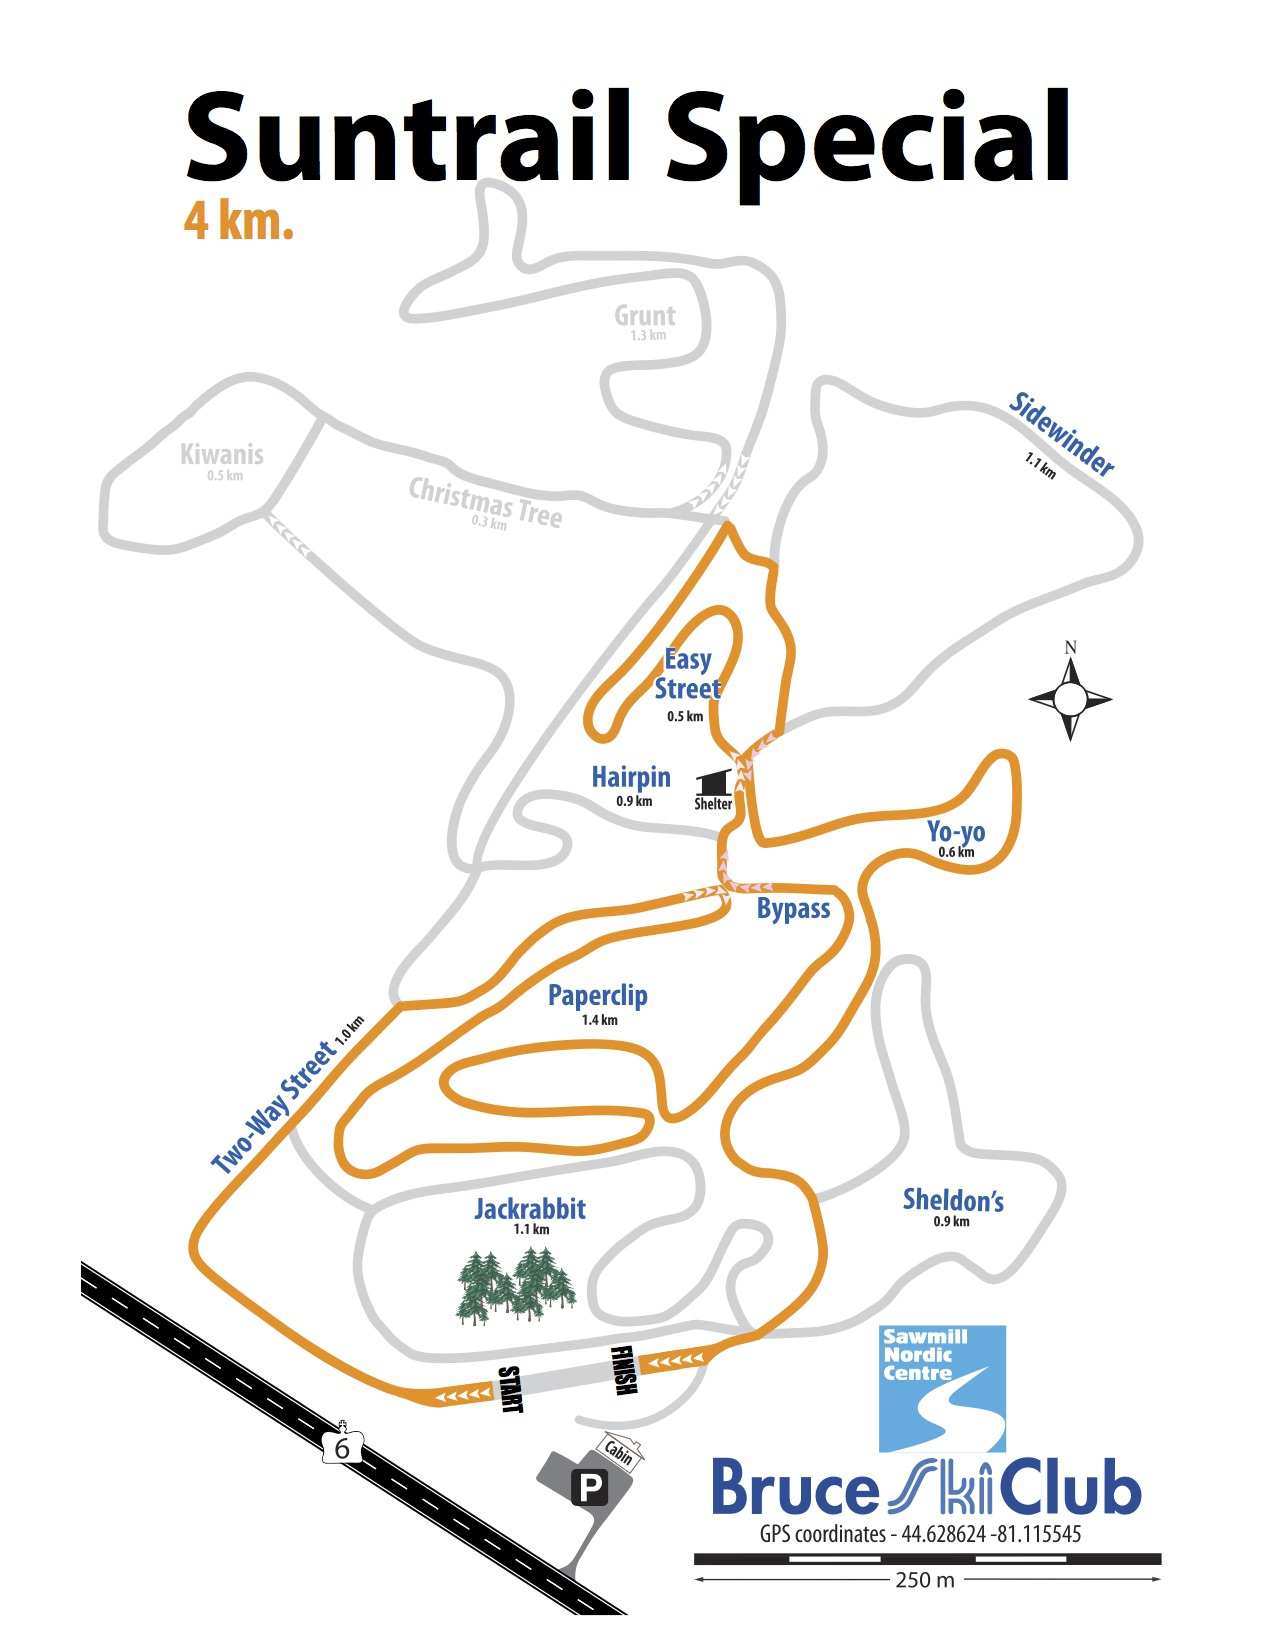 2019 Suntrail Special Cross-Country Ski Race Map – 4 km